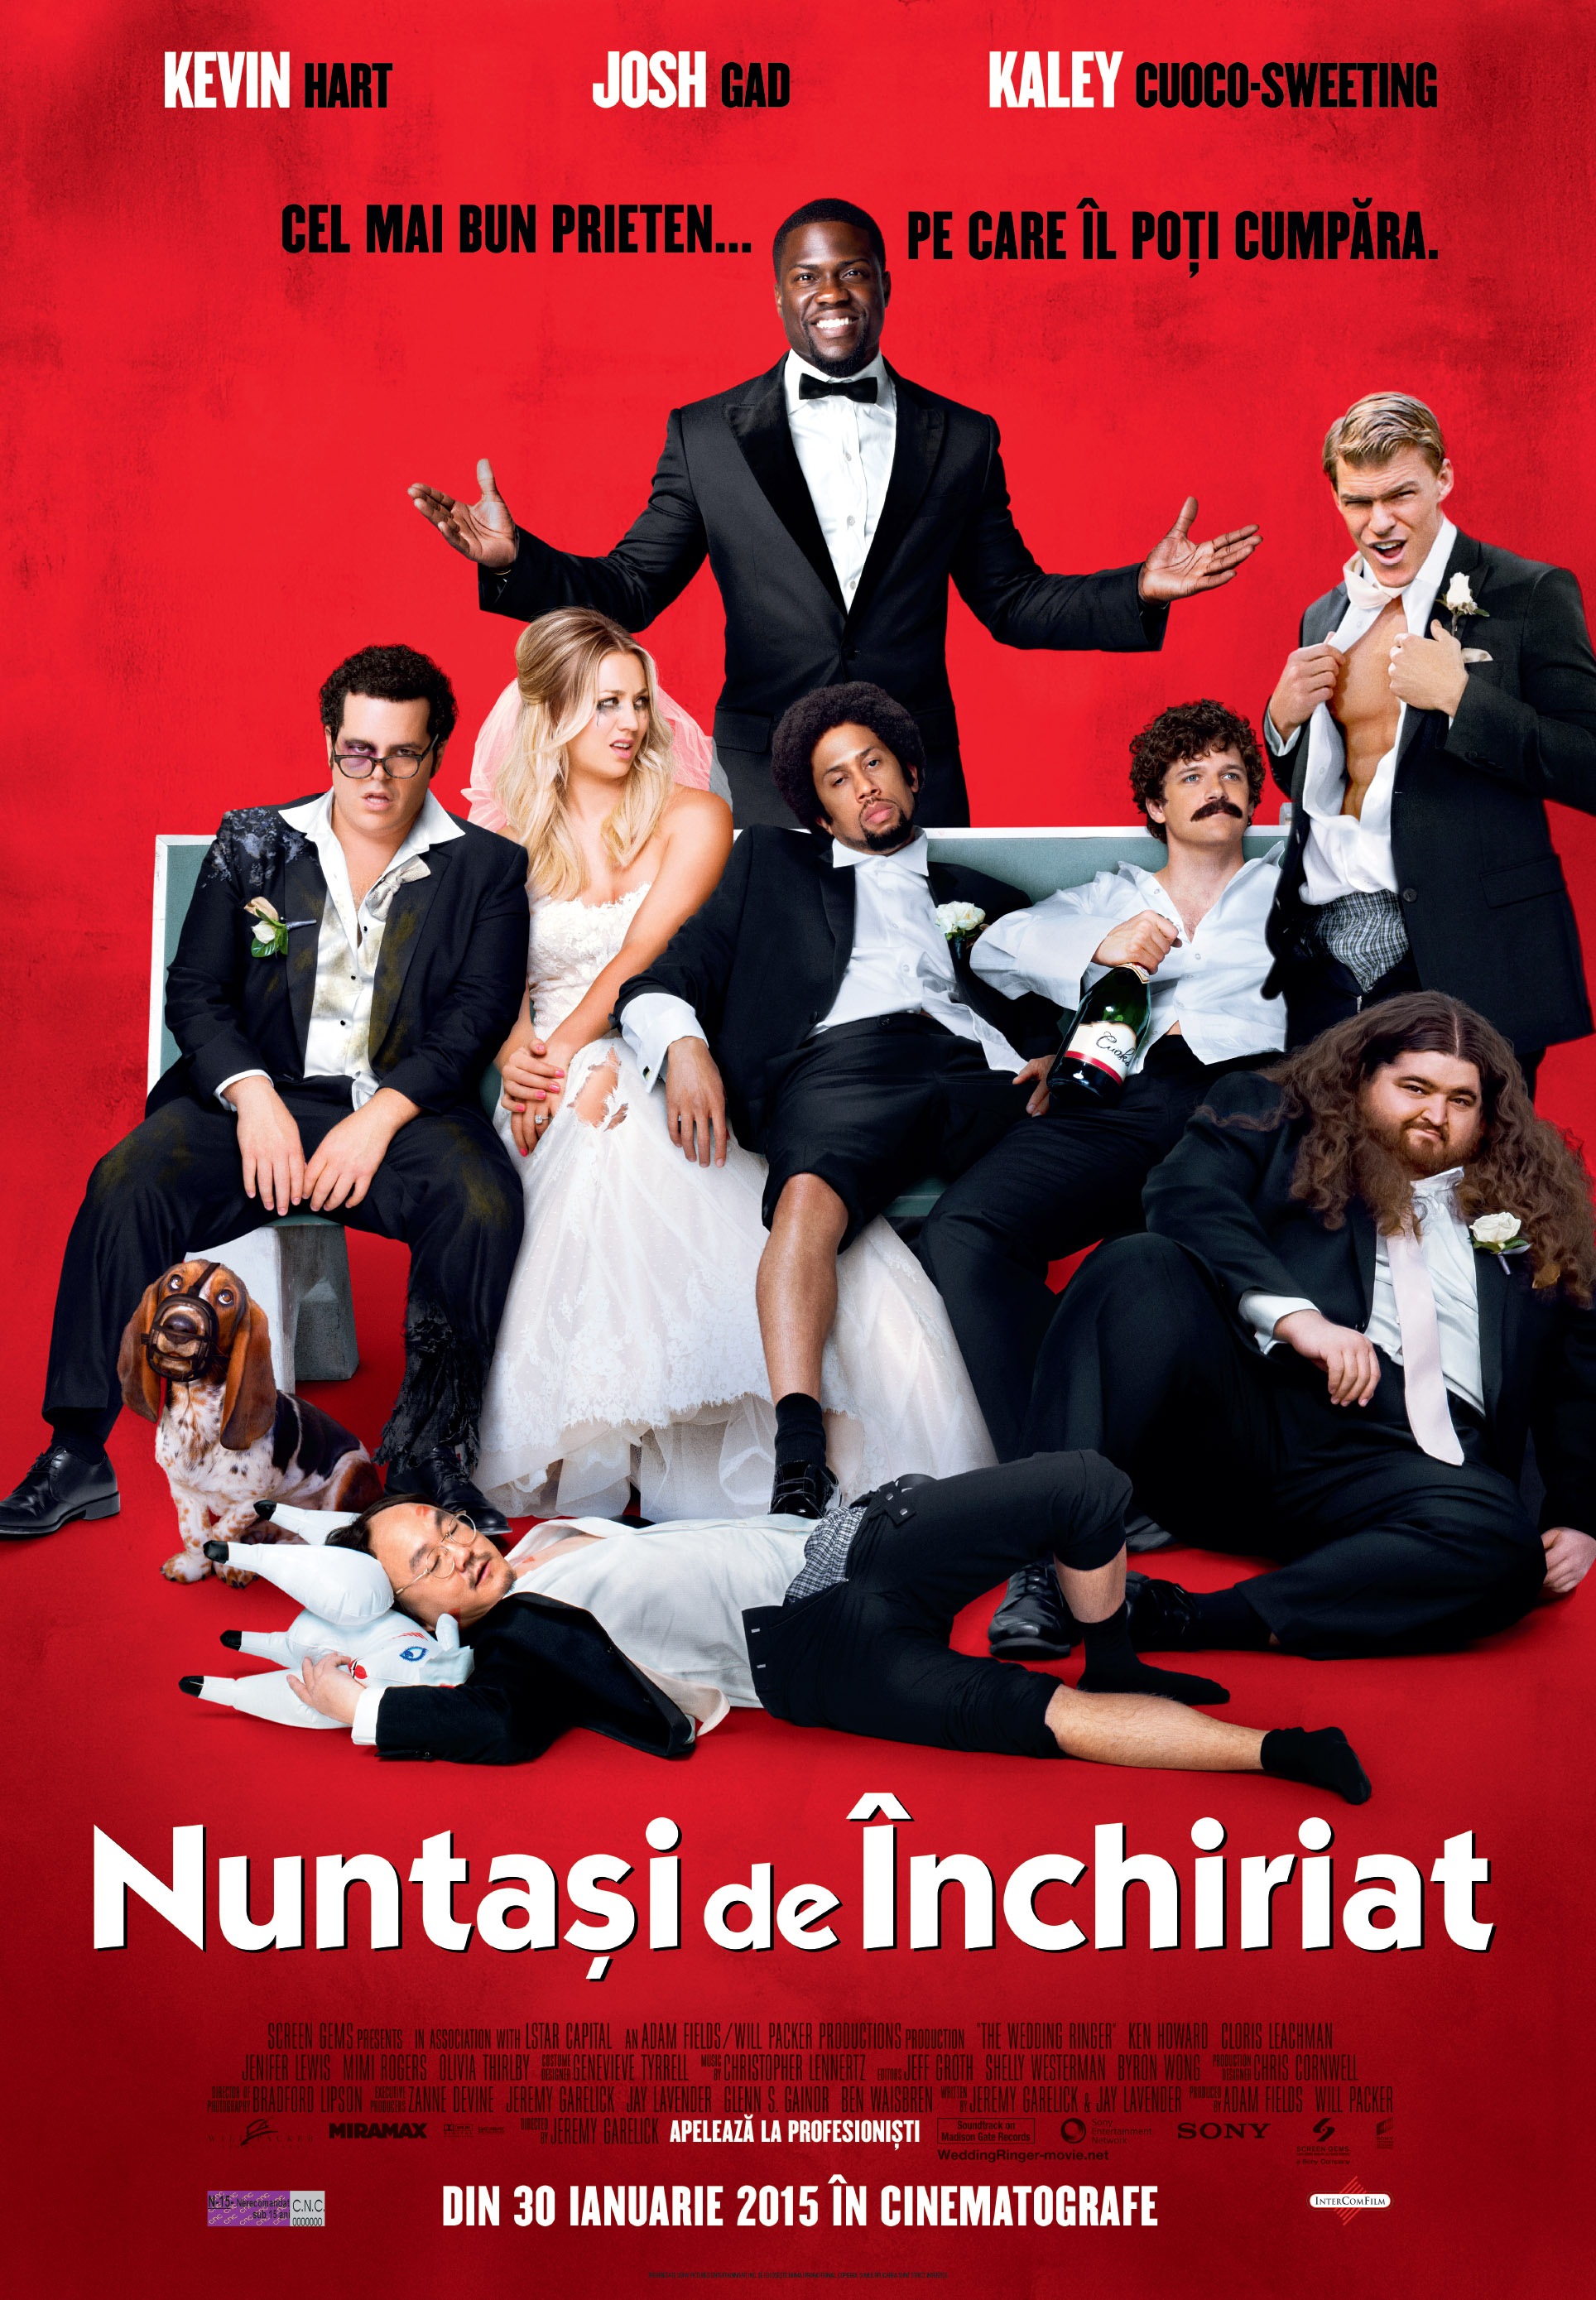 Nuntasi de inchiriat / The Wedding Ringer (Premiera)